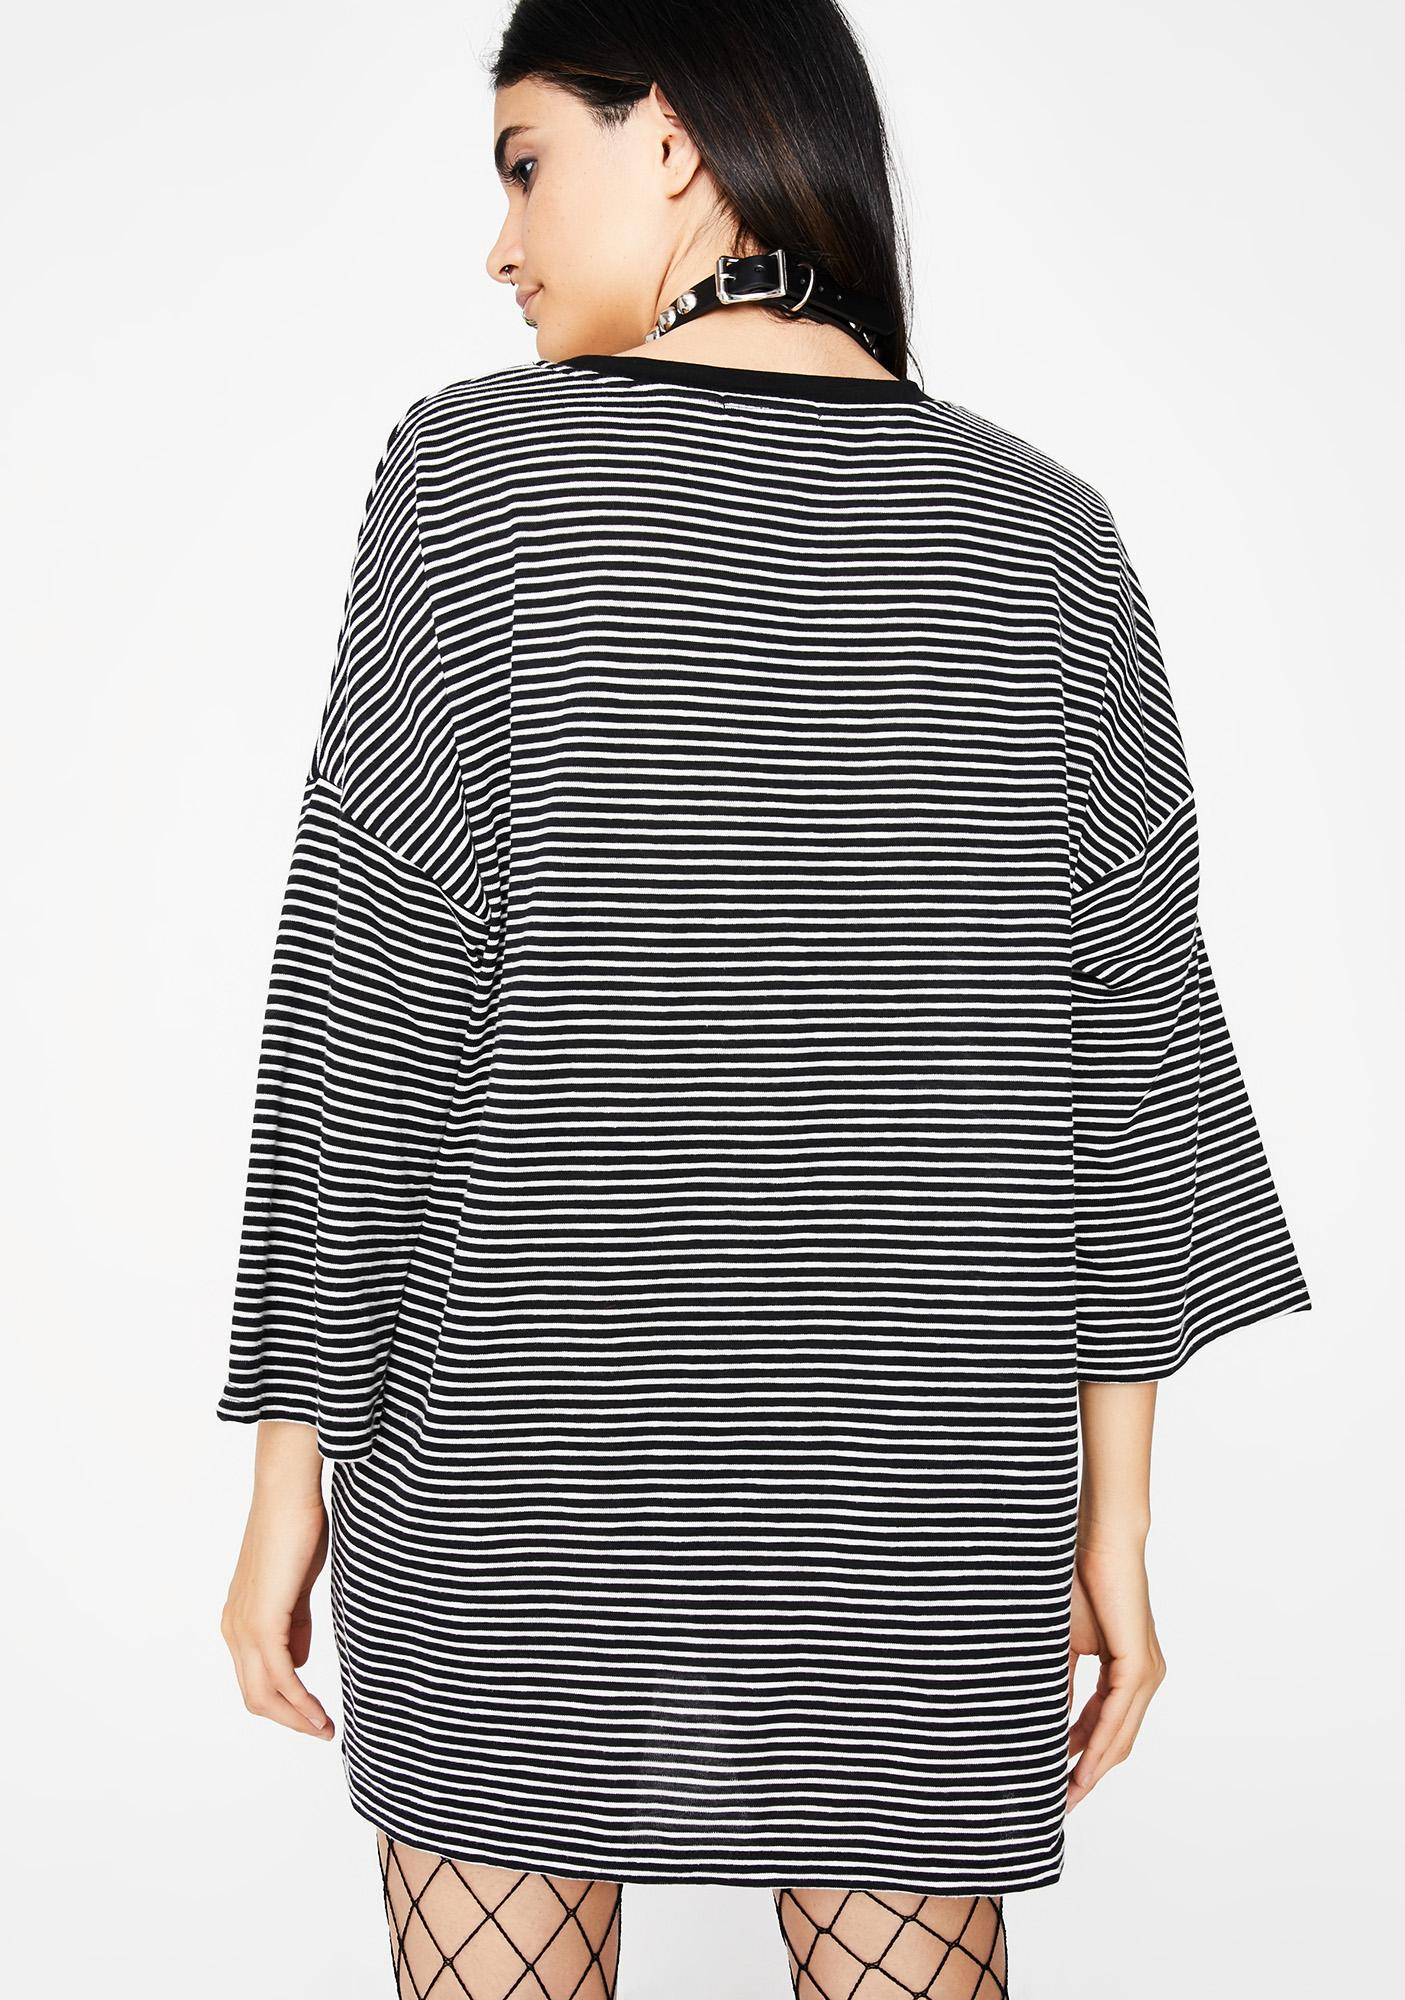 Can't Be Phazed Oversize Tee